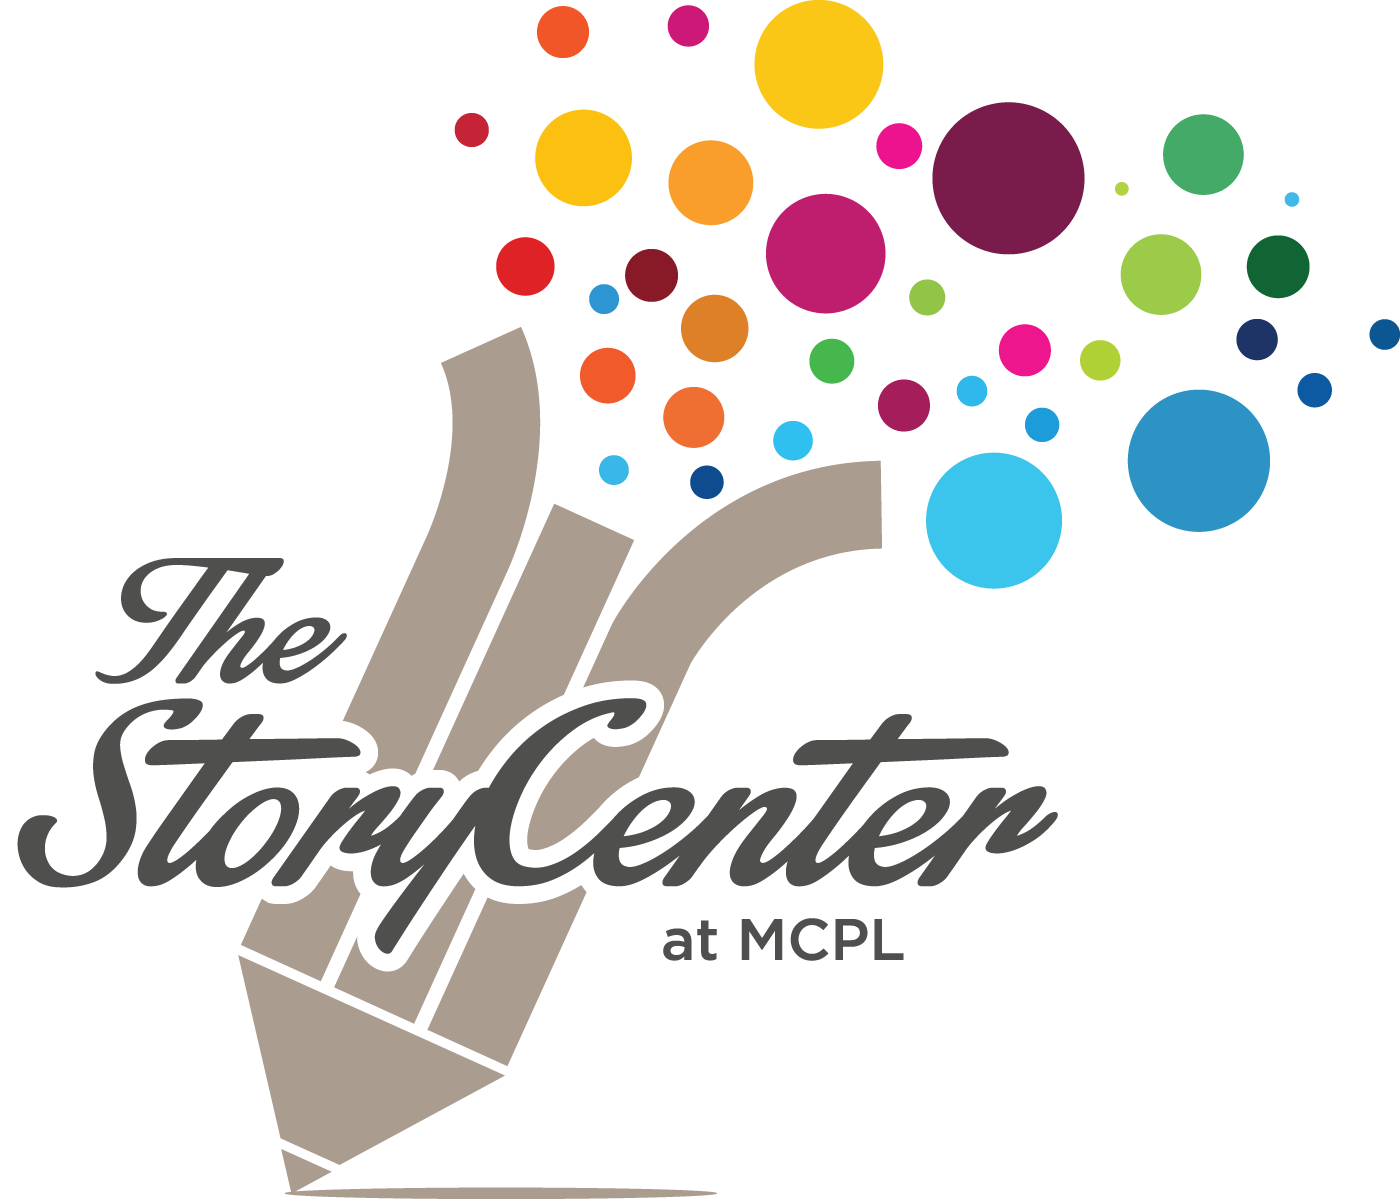 introduction to creative writing There's a story inside you waiting to be told, and in this introductory creative  writing and storytelling course, you'll nurture the skills to express your story and  find.